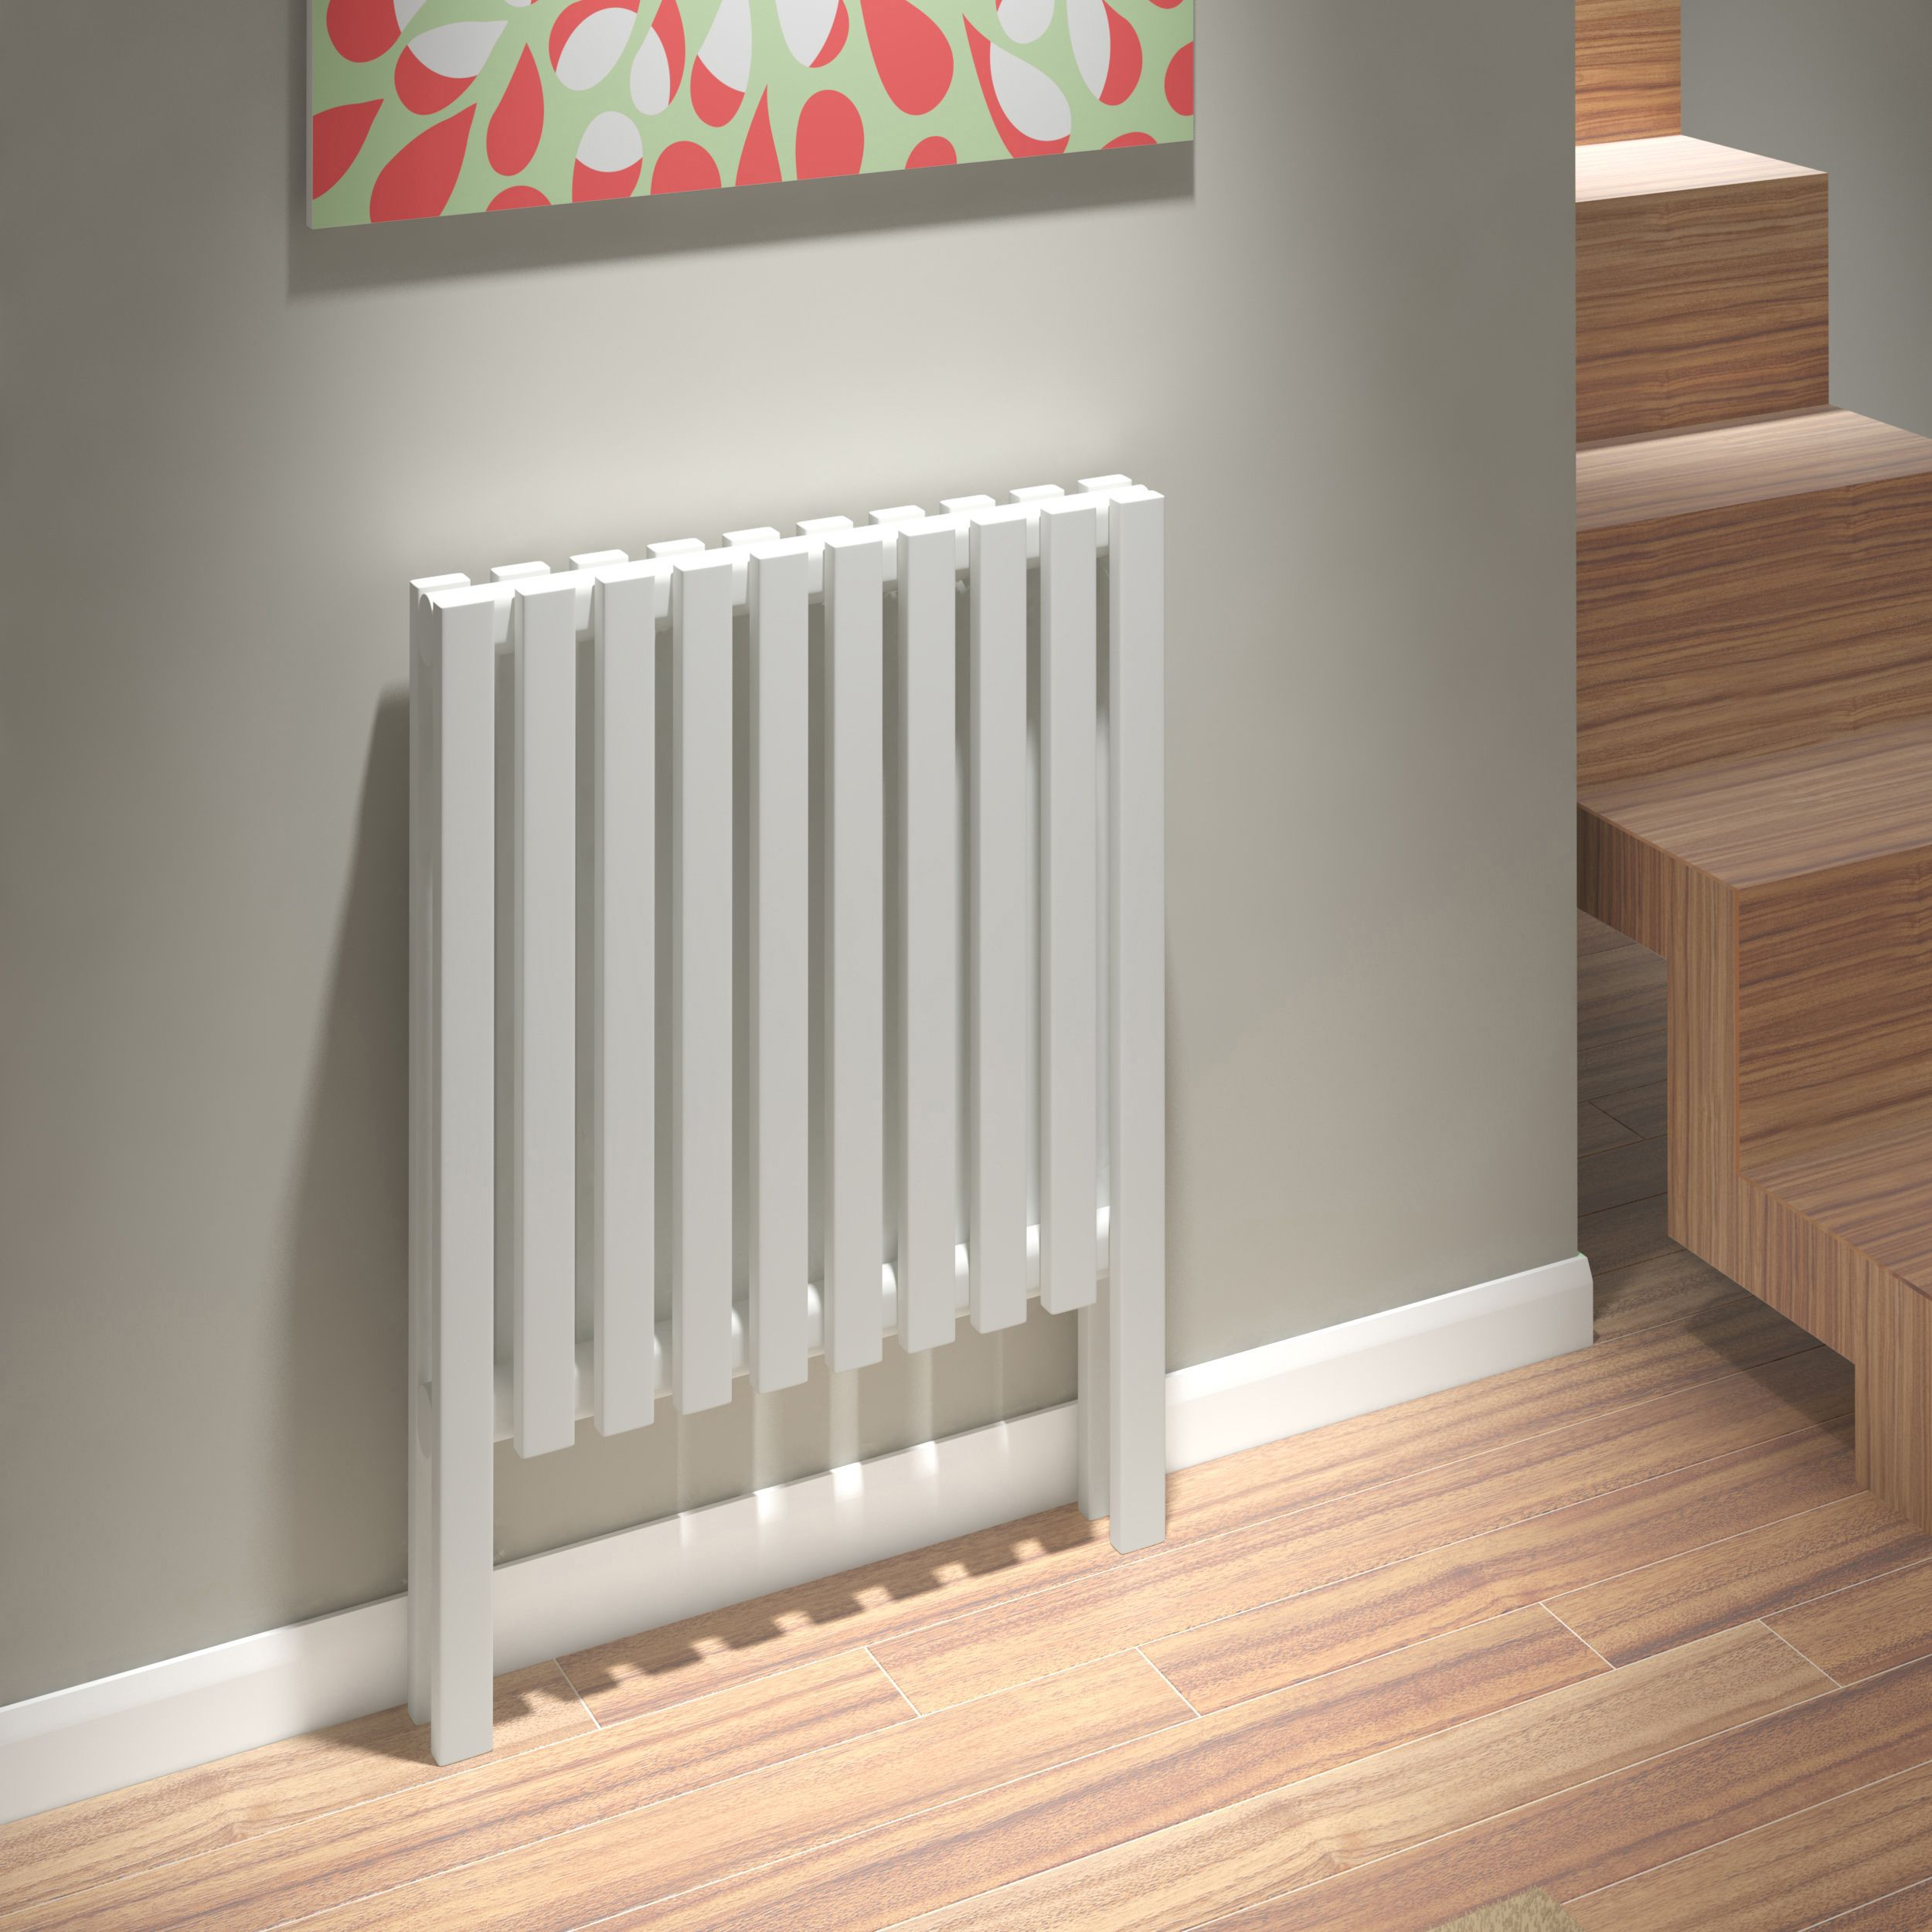 Kudox Axim Vertical Radiator White (H)800 mm (W)580